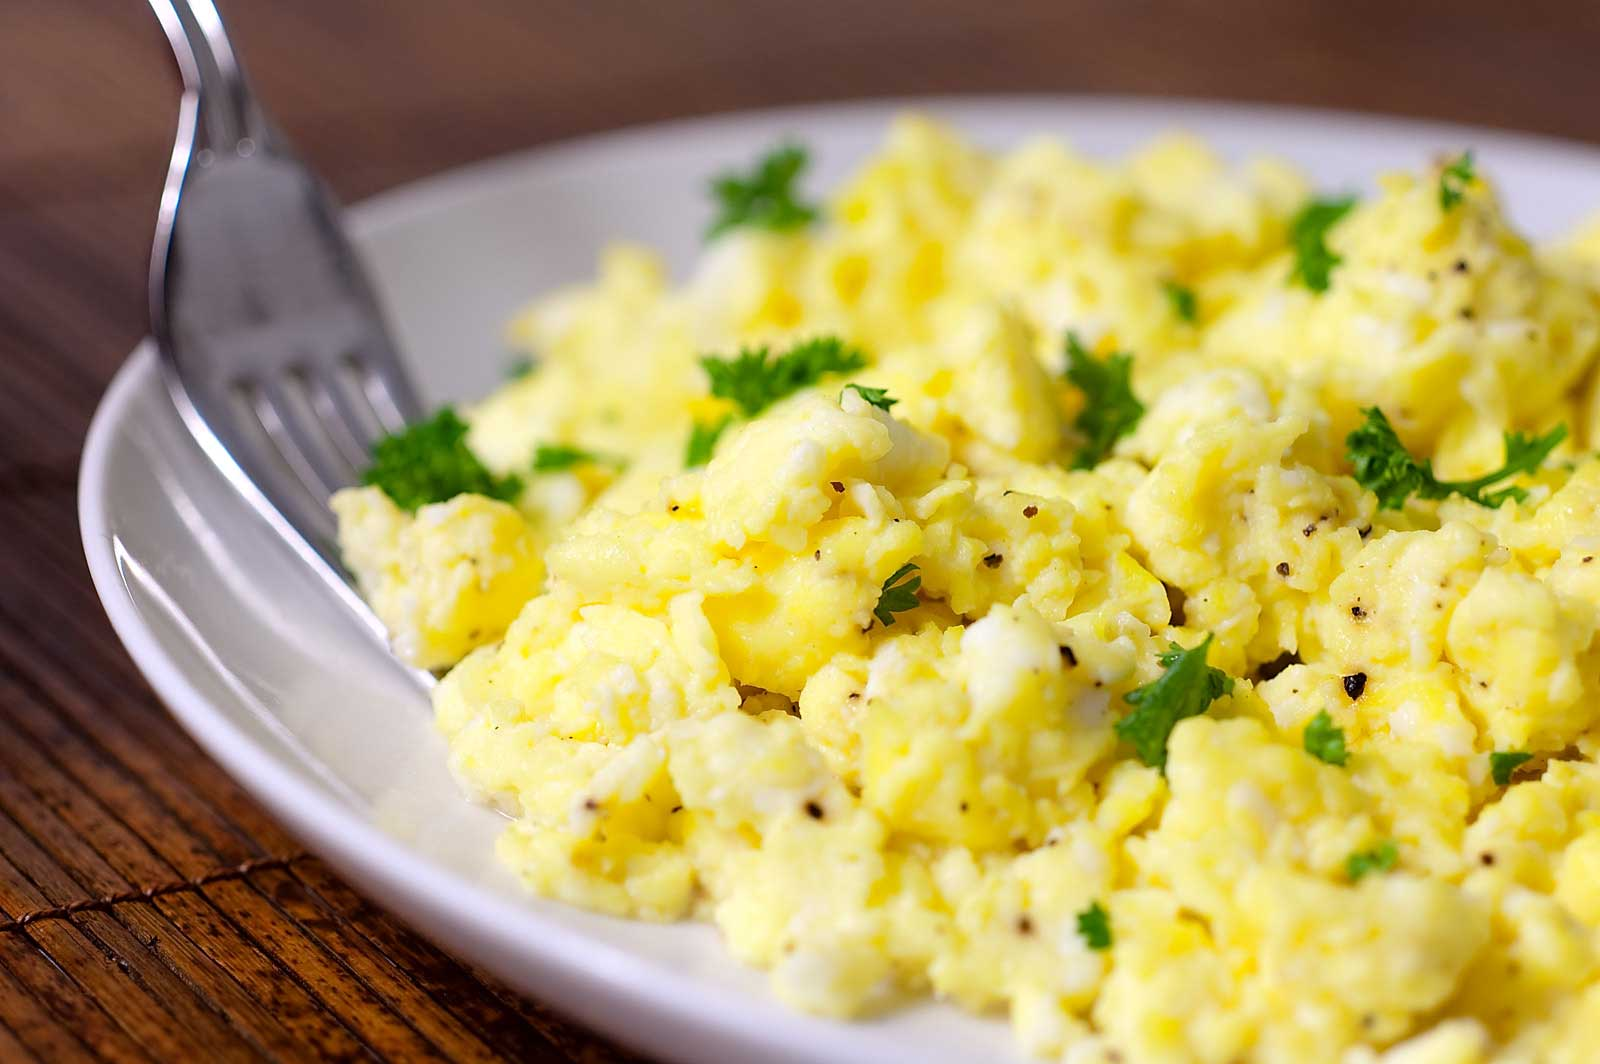 Scrambled eggs for dog food dinner Wellbeing for Dogs